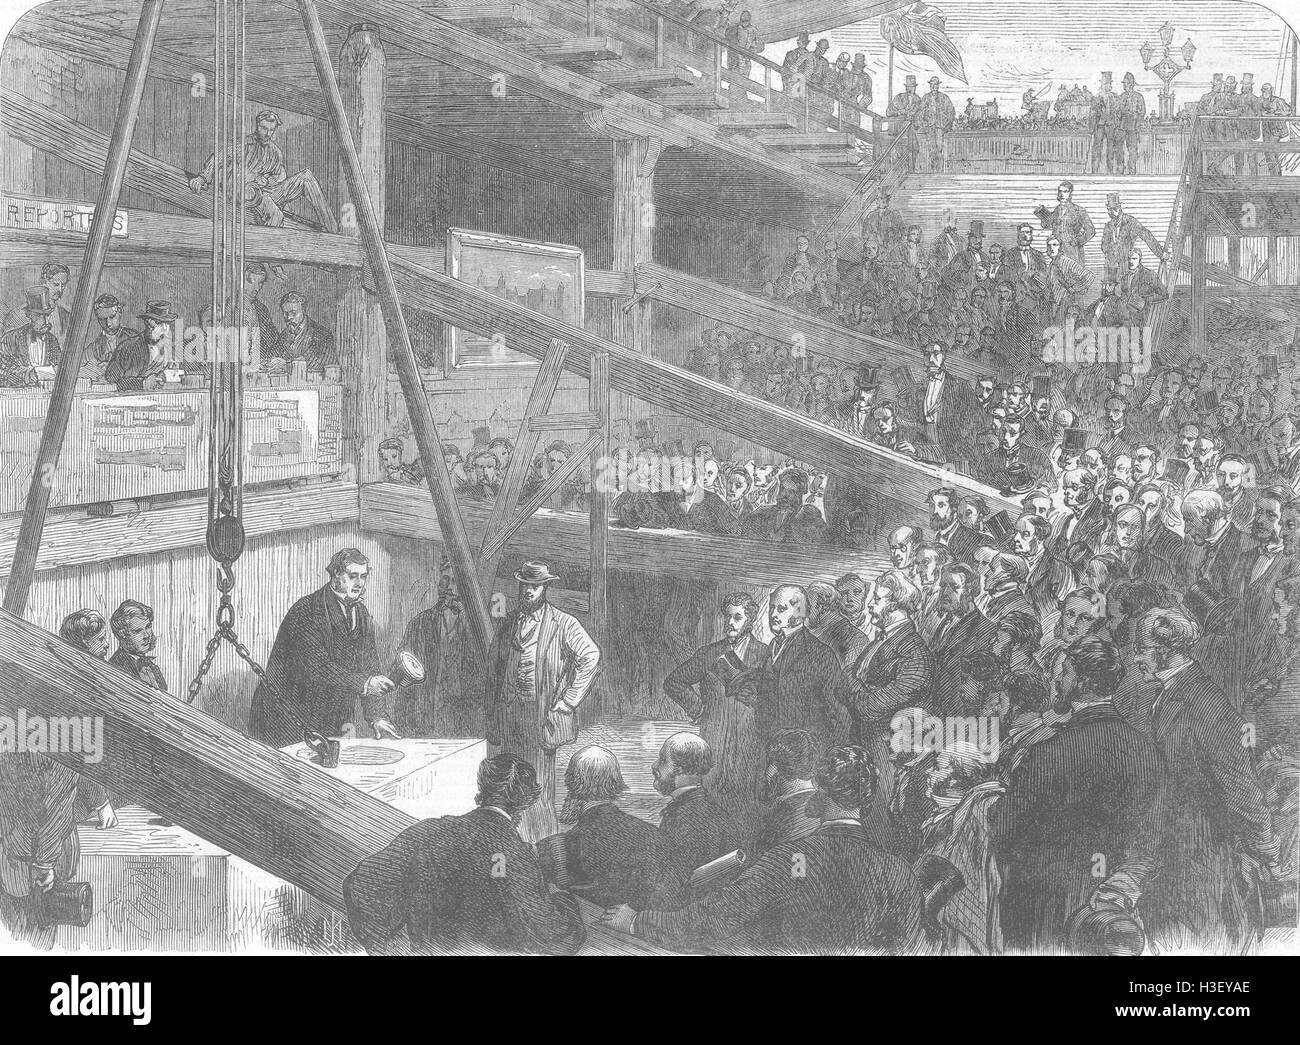 LONDON Laying keystone of Thames Albert Embankment 1866. Illustrated London News - Stock Image